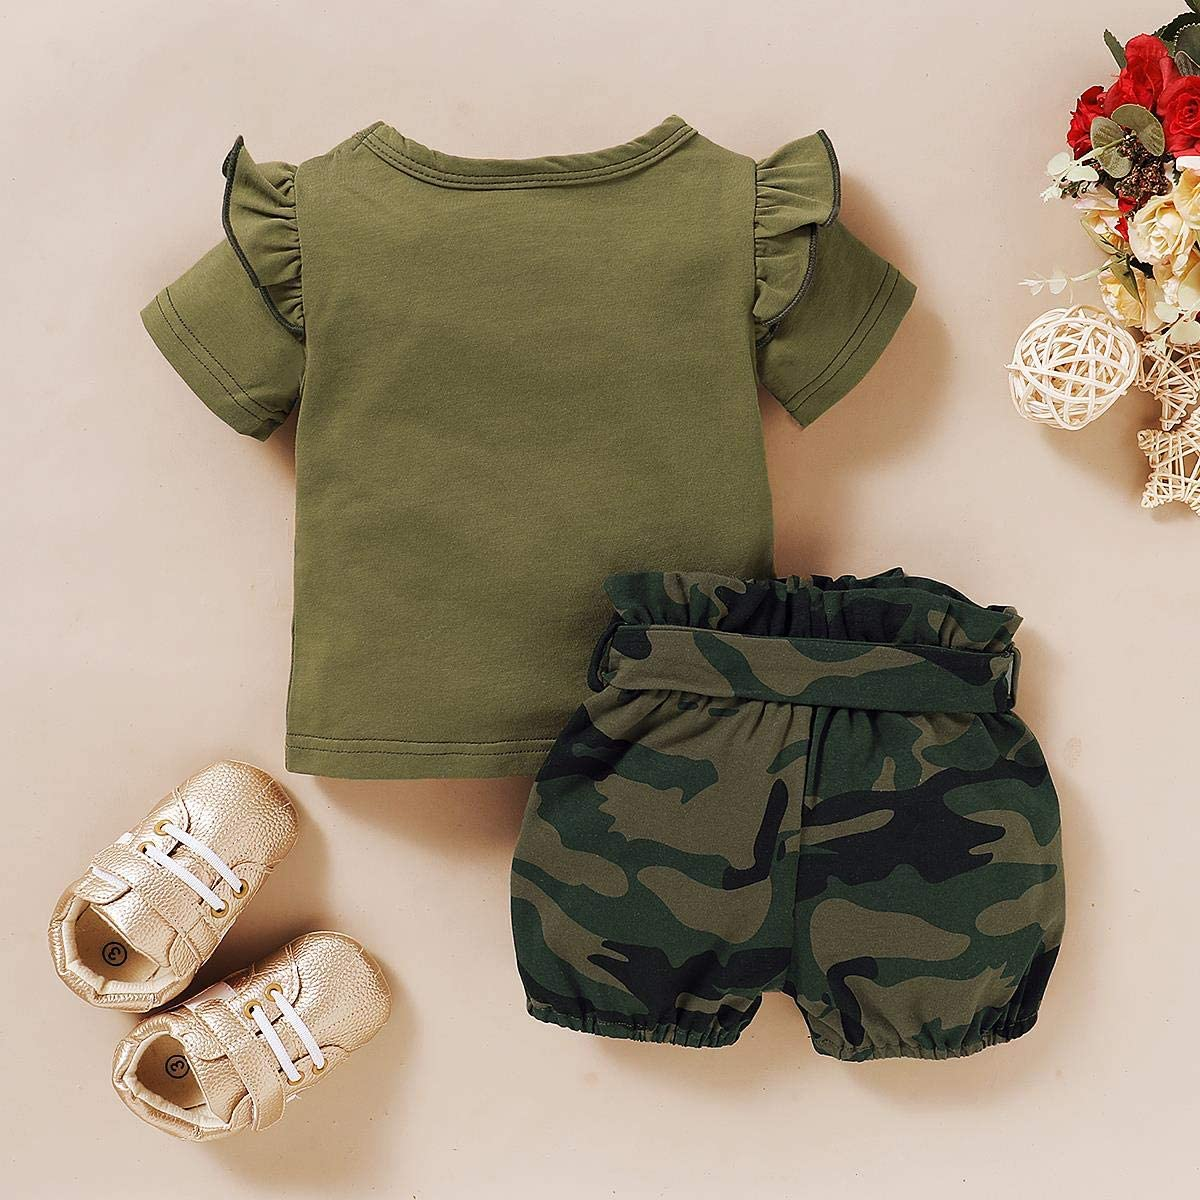 Skirt Headband 2pcs 3pcs Clothes Set FYMNSI Newborn Infant Baby Girl Camouflage Letter Print Summer Casual Outfit Romper Top